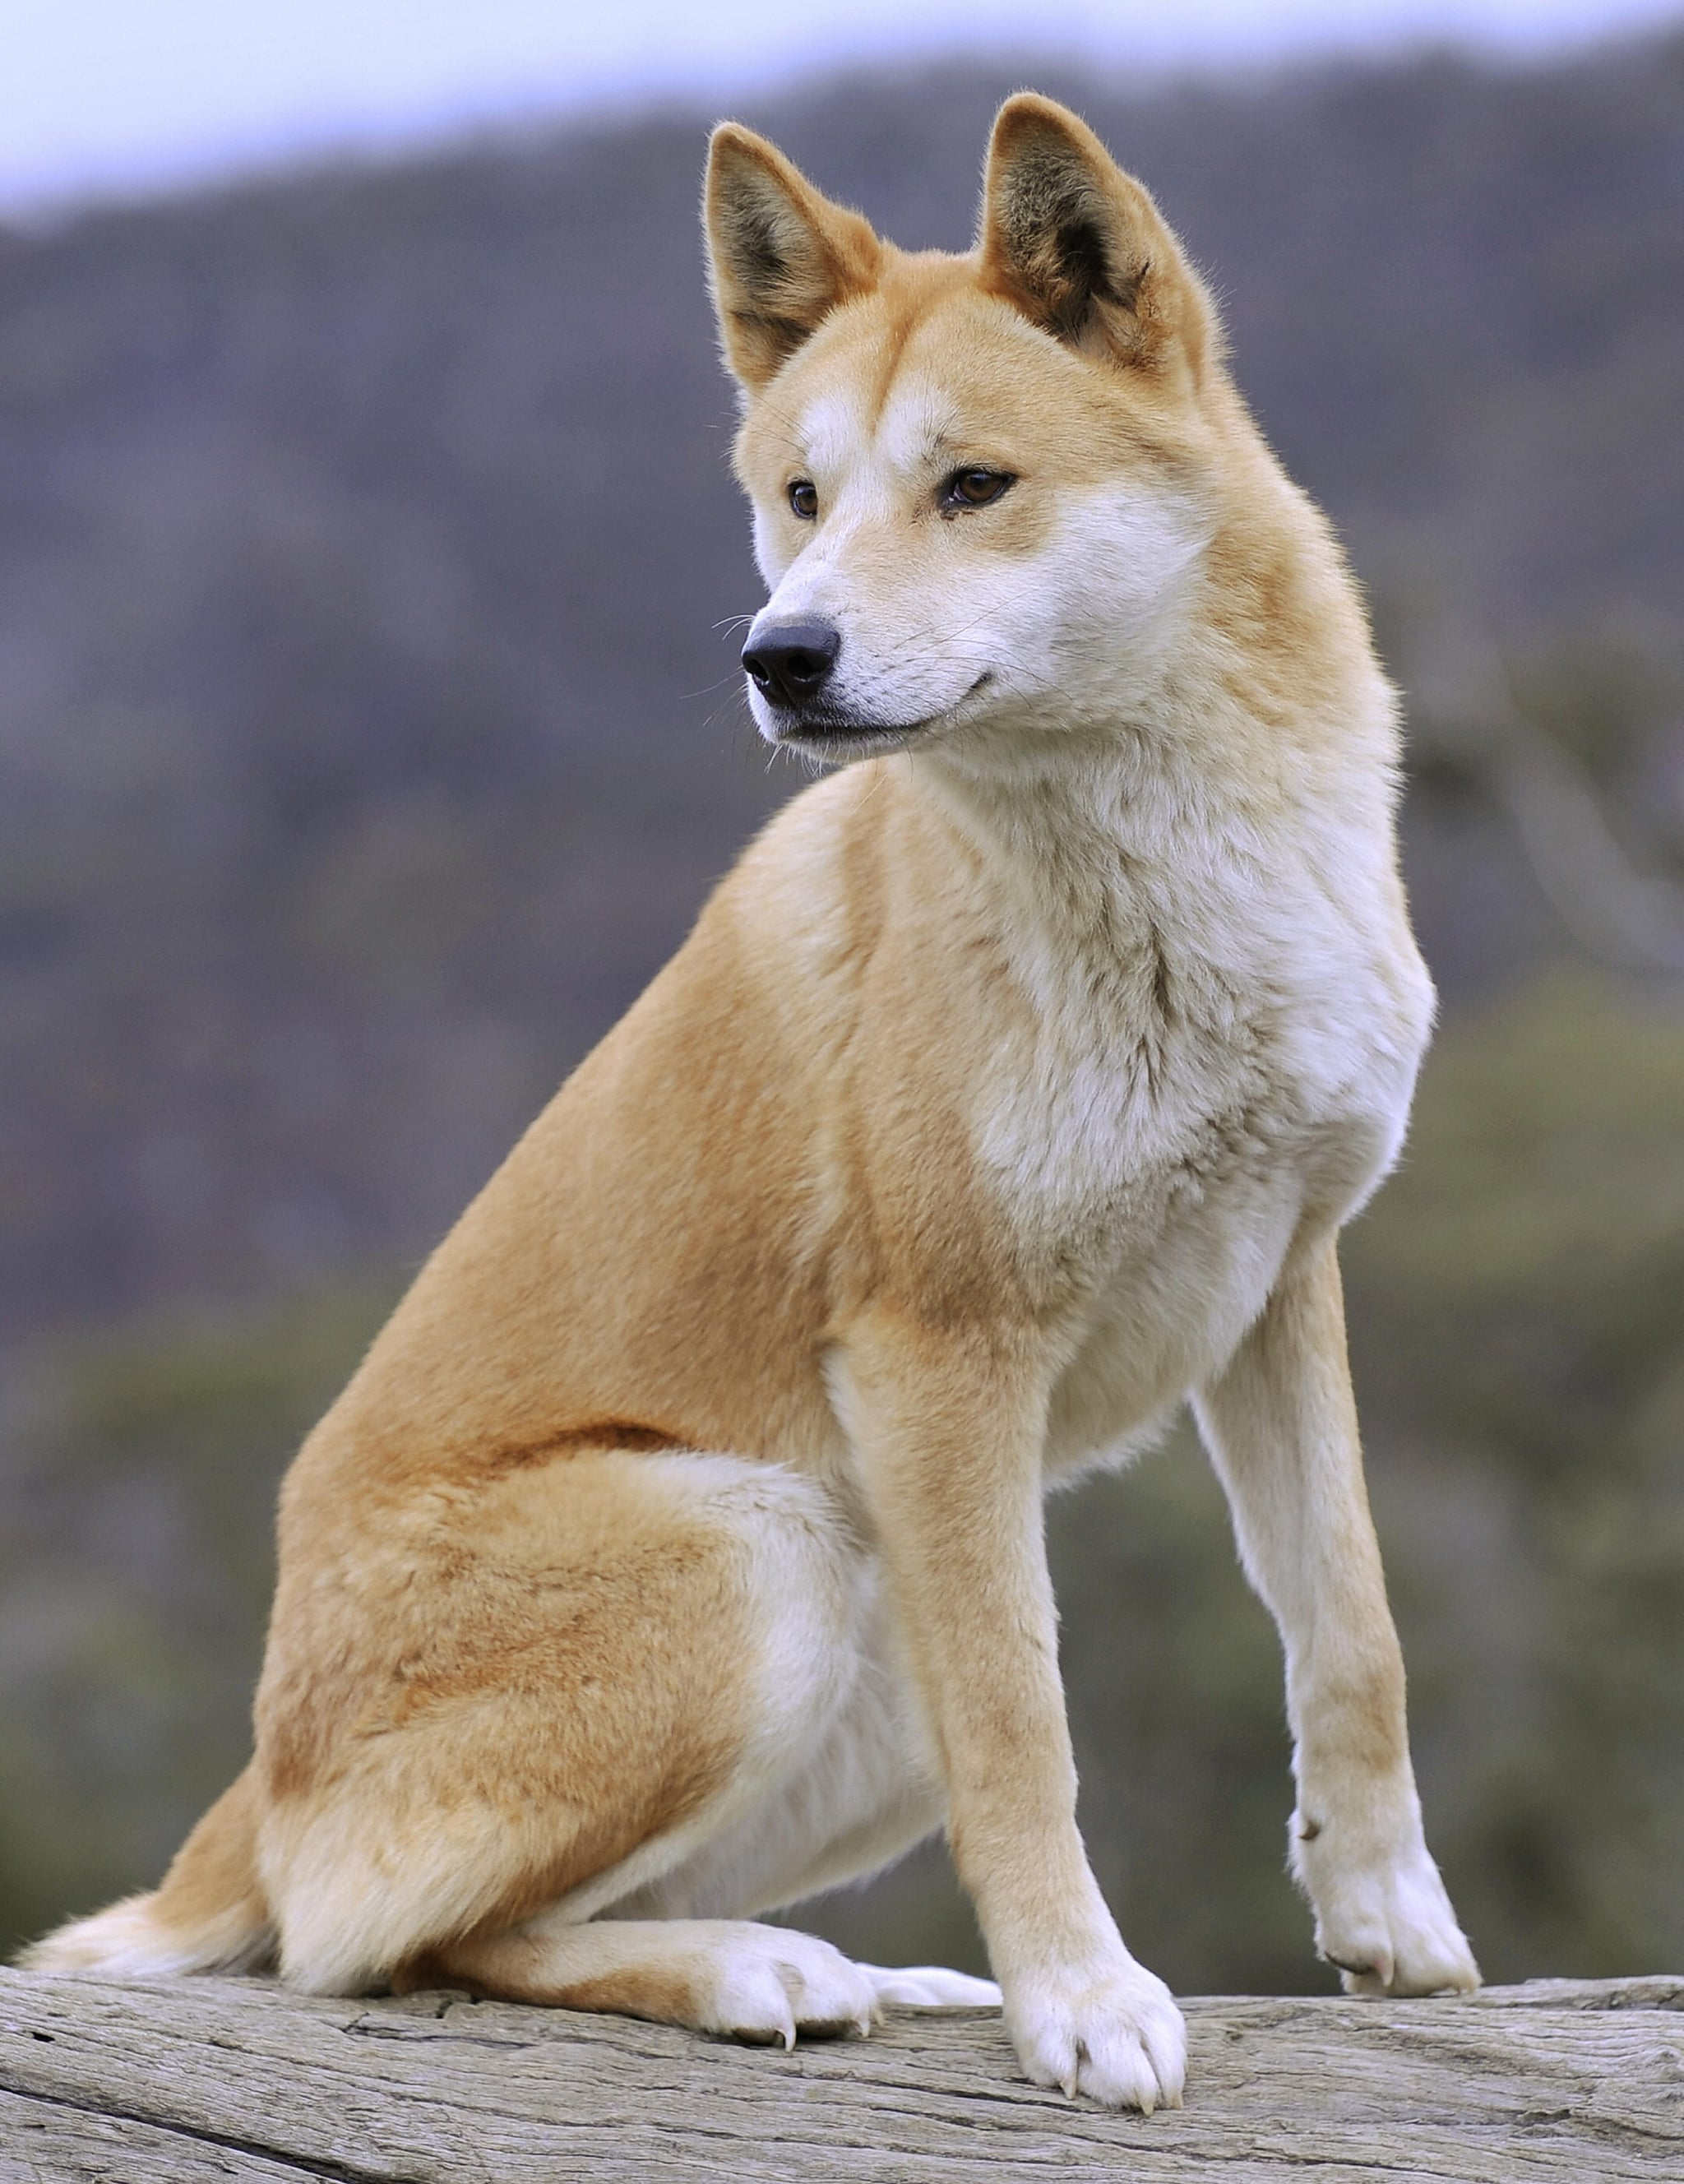 This lovely adult dingo at the Dingo Discovery and Research Centre showcases the more common tan-and-white coloring of the species. White dingoes and black dingoes also exist, but due to dwindling populations, they are very rare.